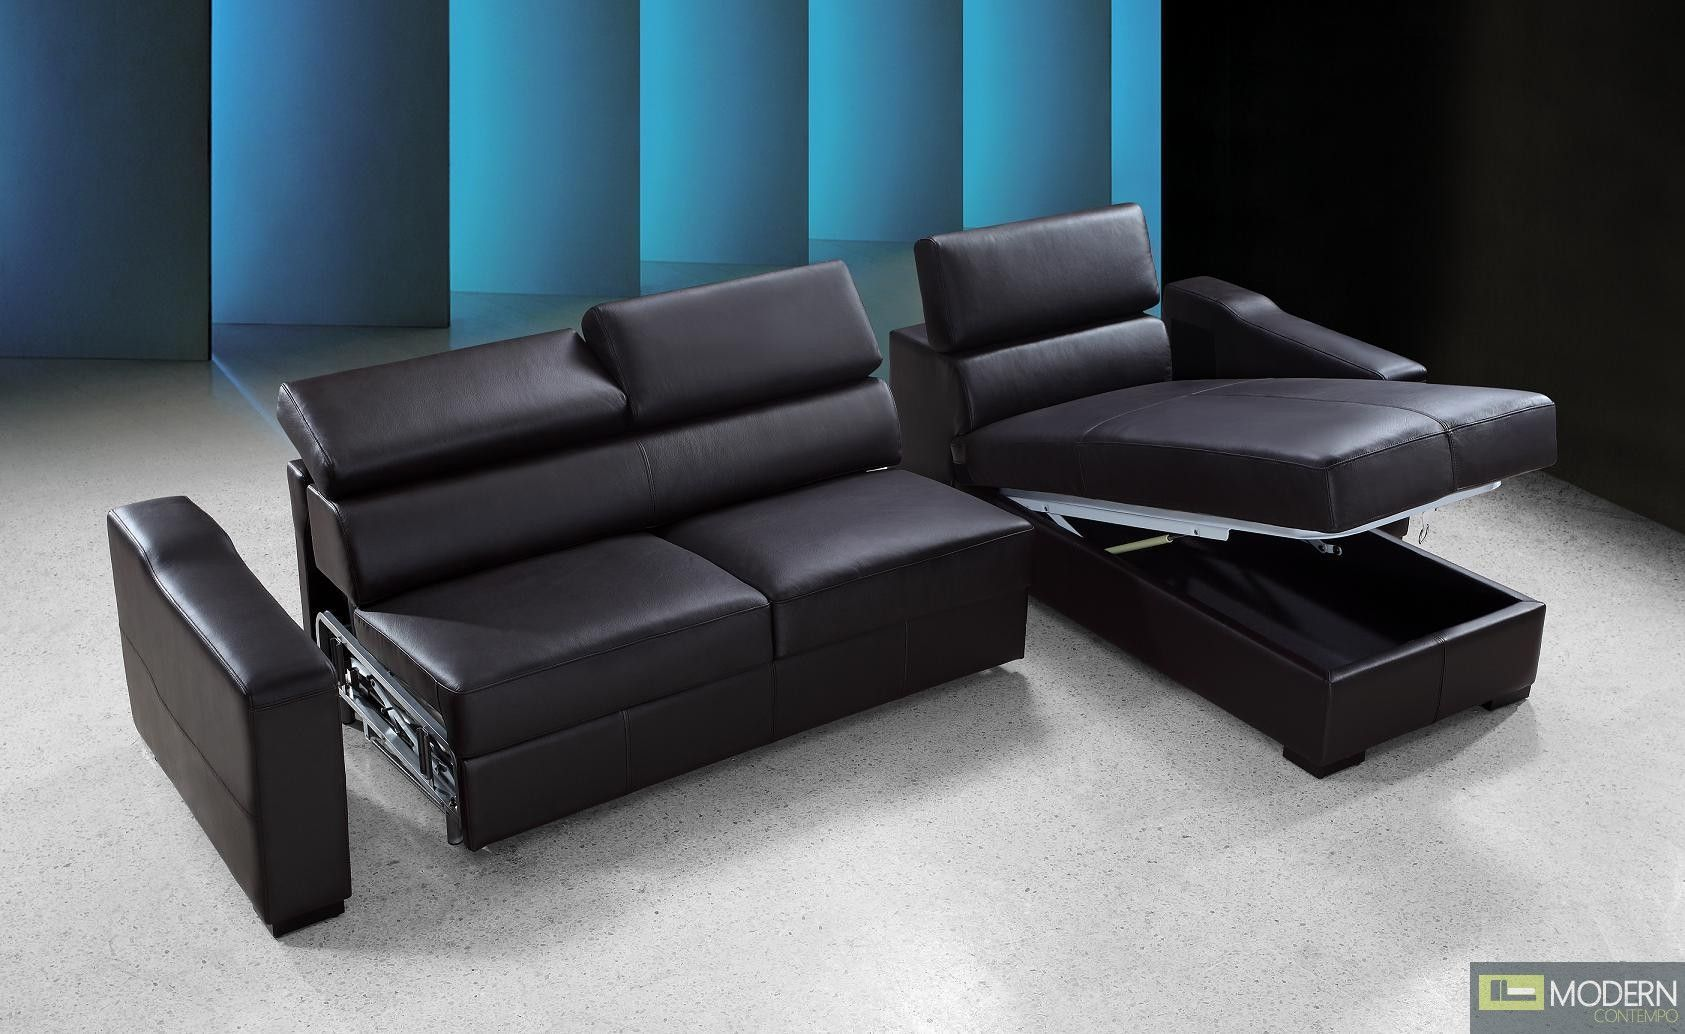 This comfortable black leather sectional not only